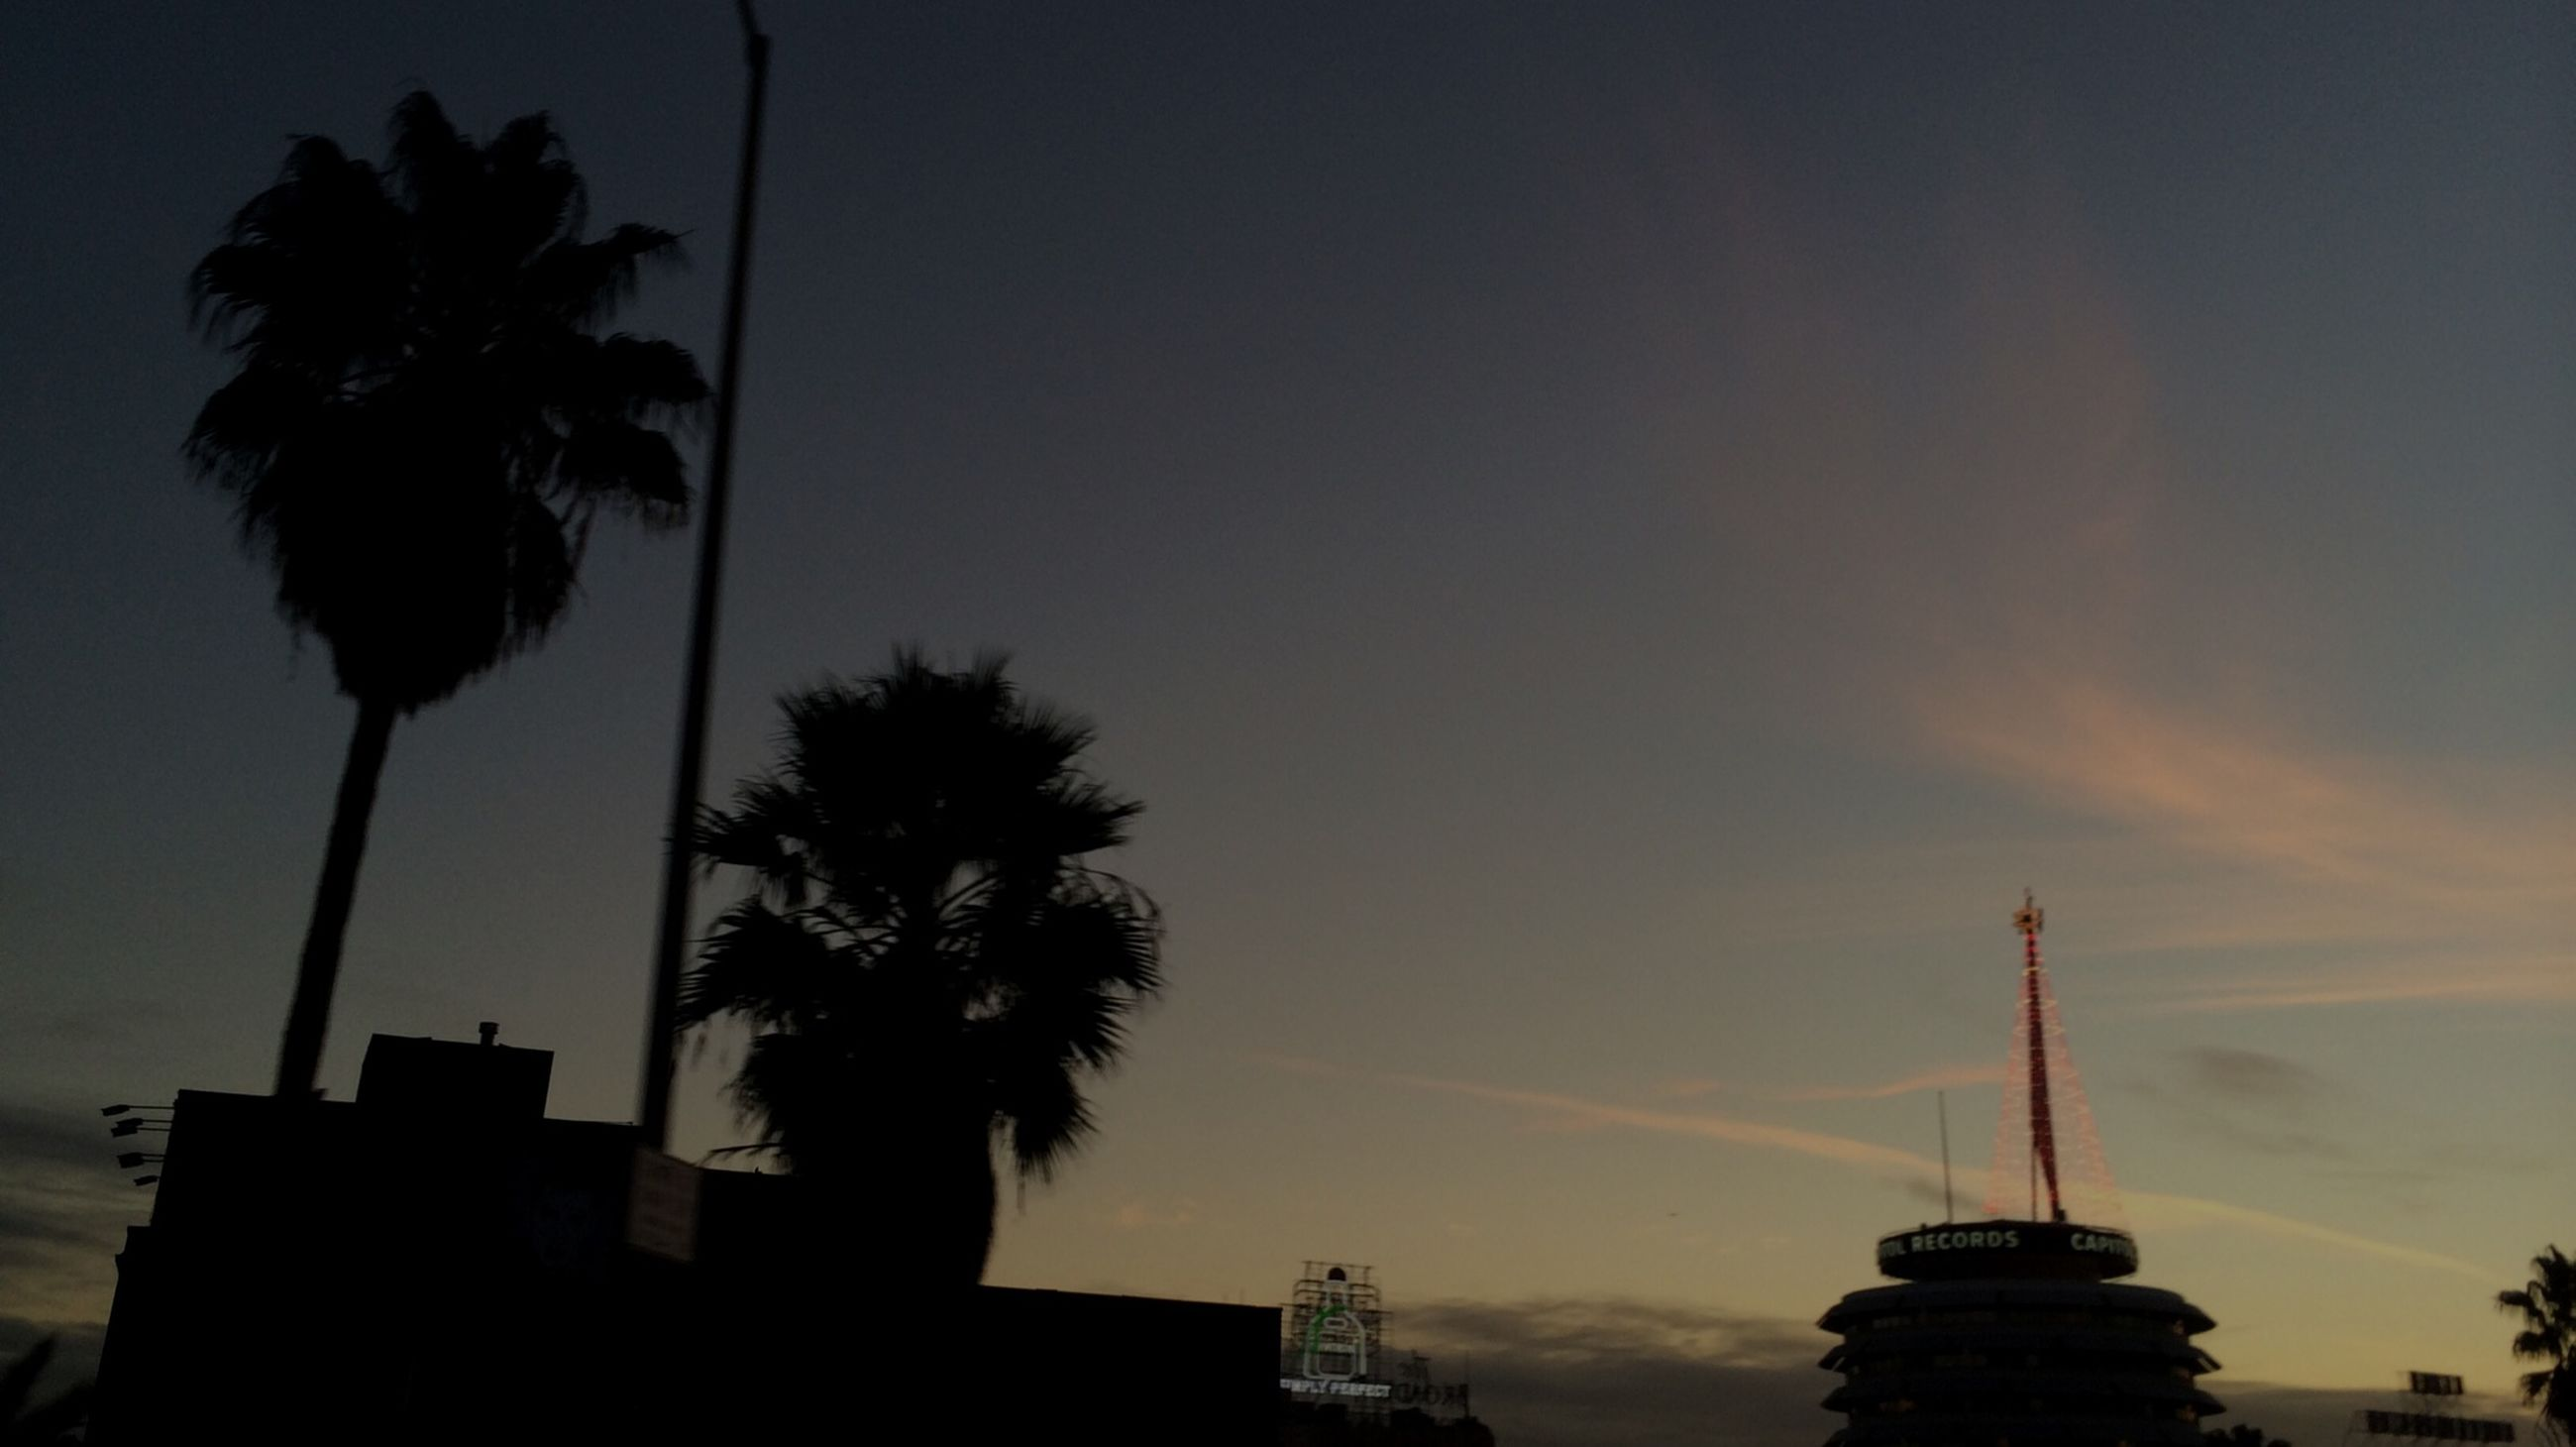 silhouette, palm tree, low angle view, sky, tree, sunset, built structure, dusk, building exterior, architecture, outline, nature, cloud - sky, growth, tall - high, outdoors, no people, street light, beauty in nature, copy space